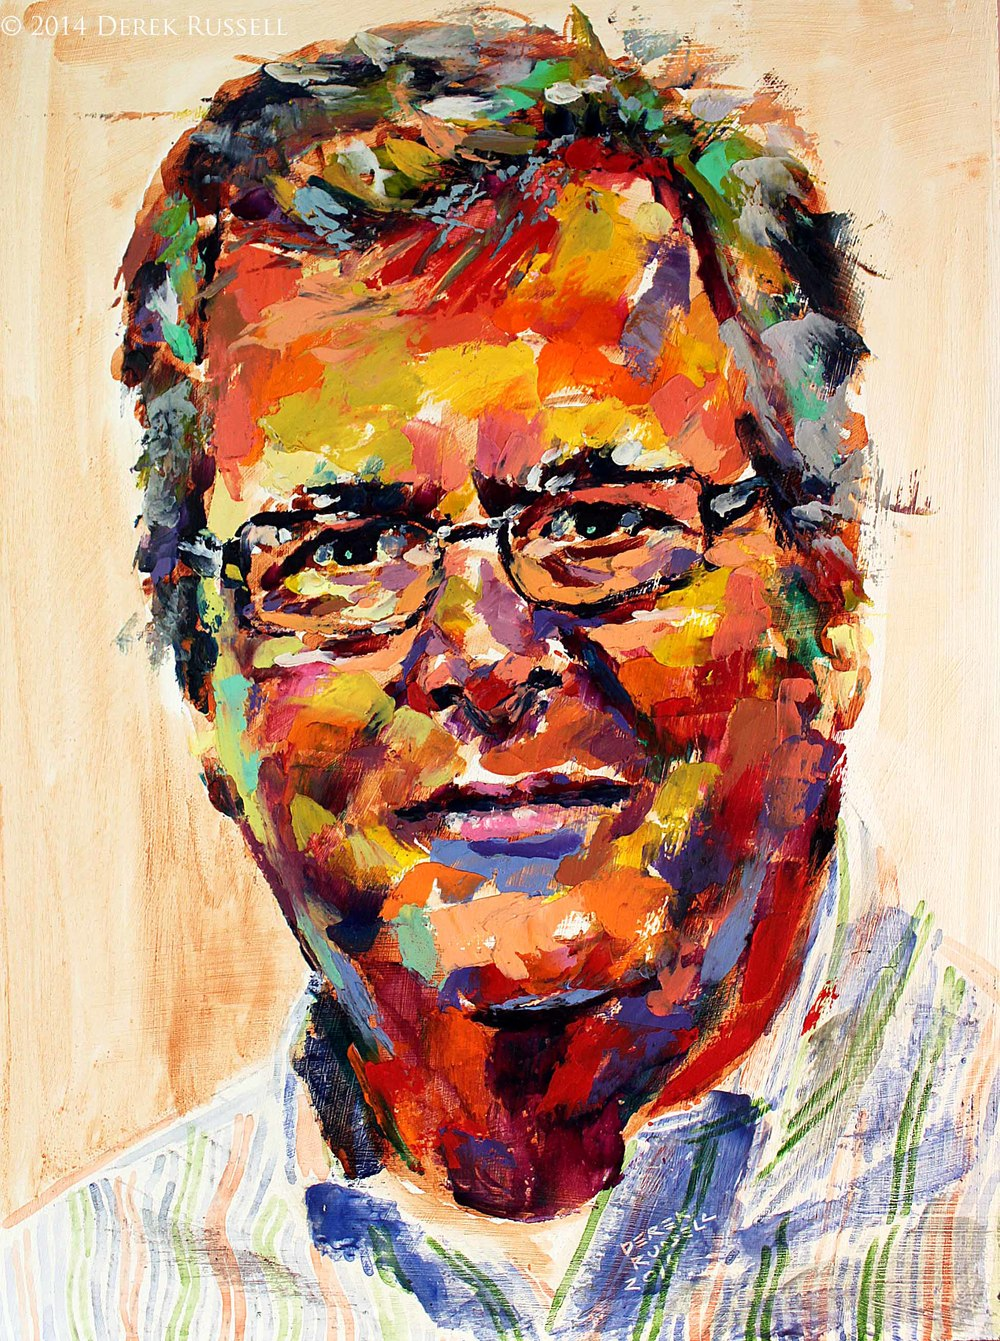 Governor Jeb Bush Original Portrait Pop Art Painting by Derek Russell